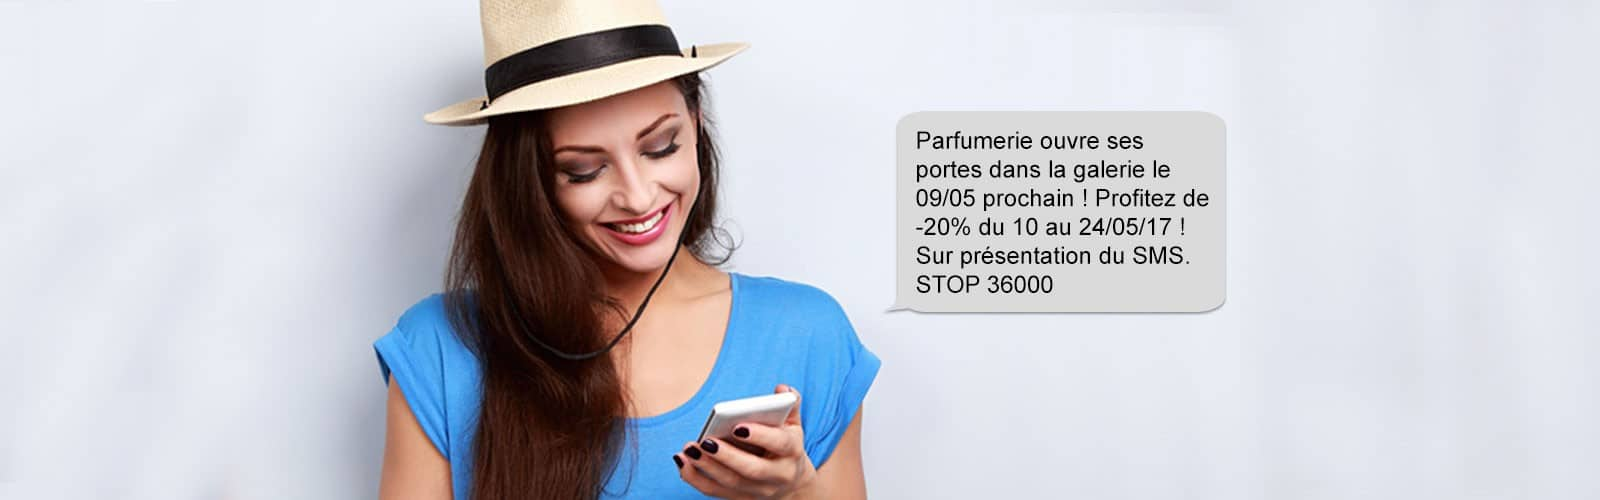 SMS Ouverture magasin